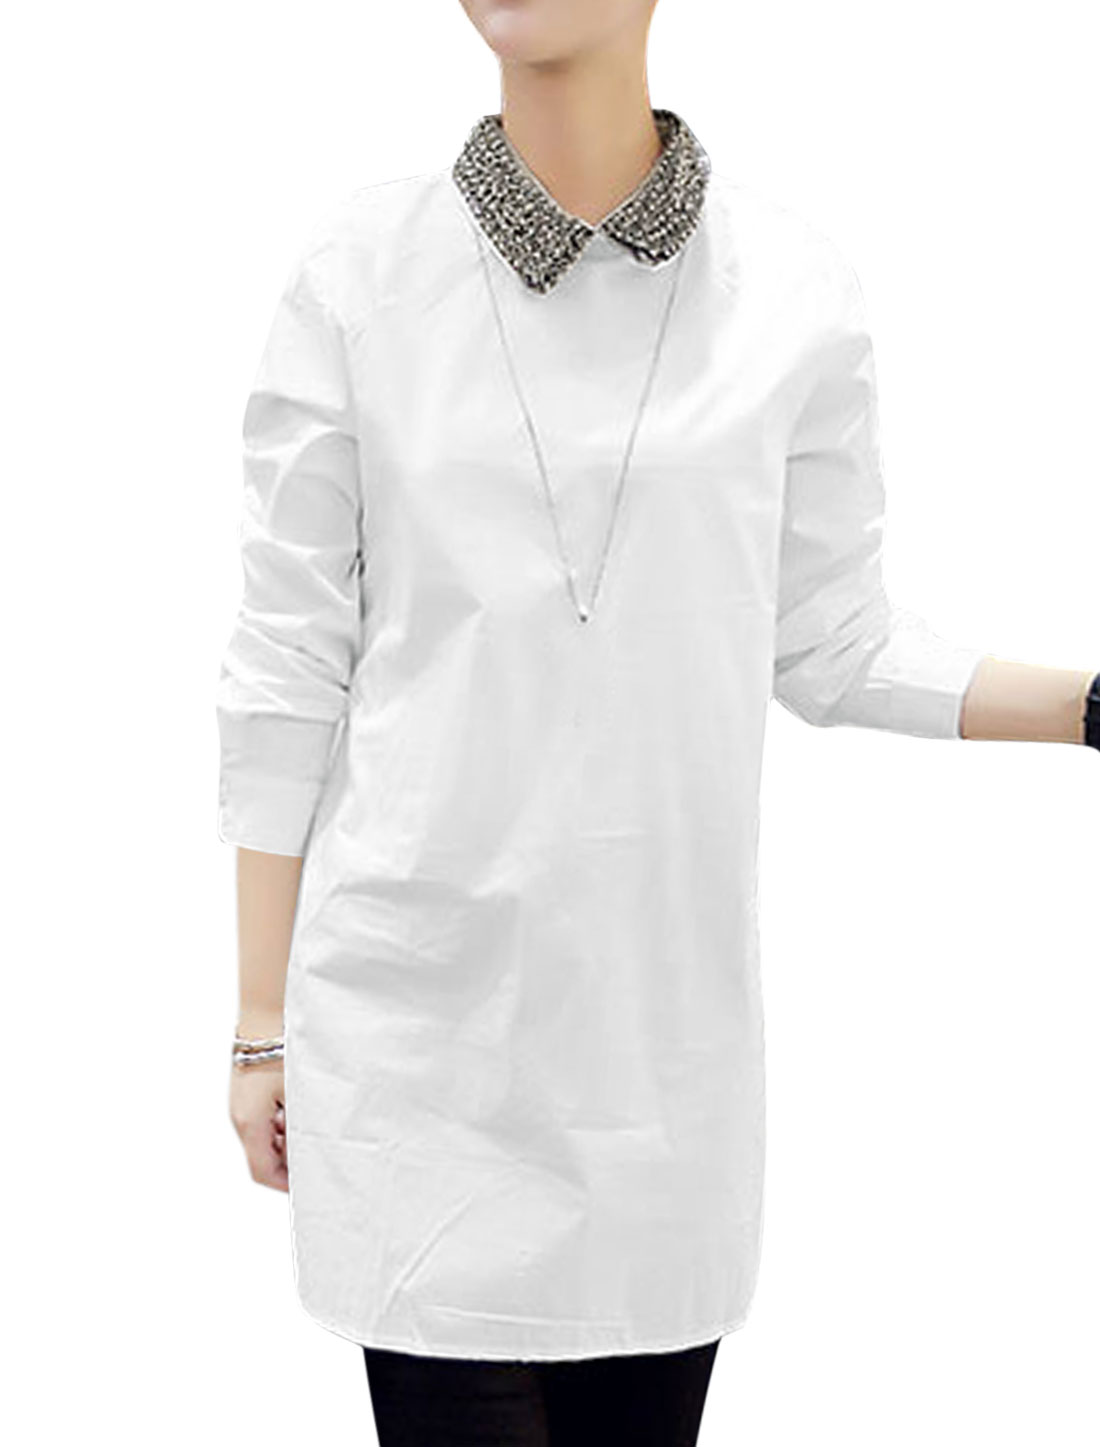 Women Beads Decor Collar Split Sides Tunic Blouse White XS